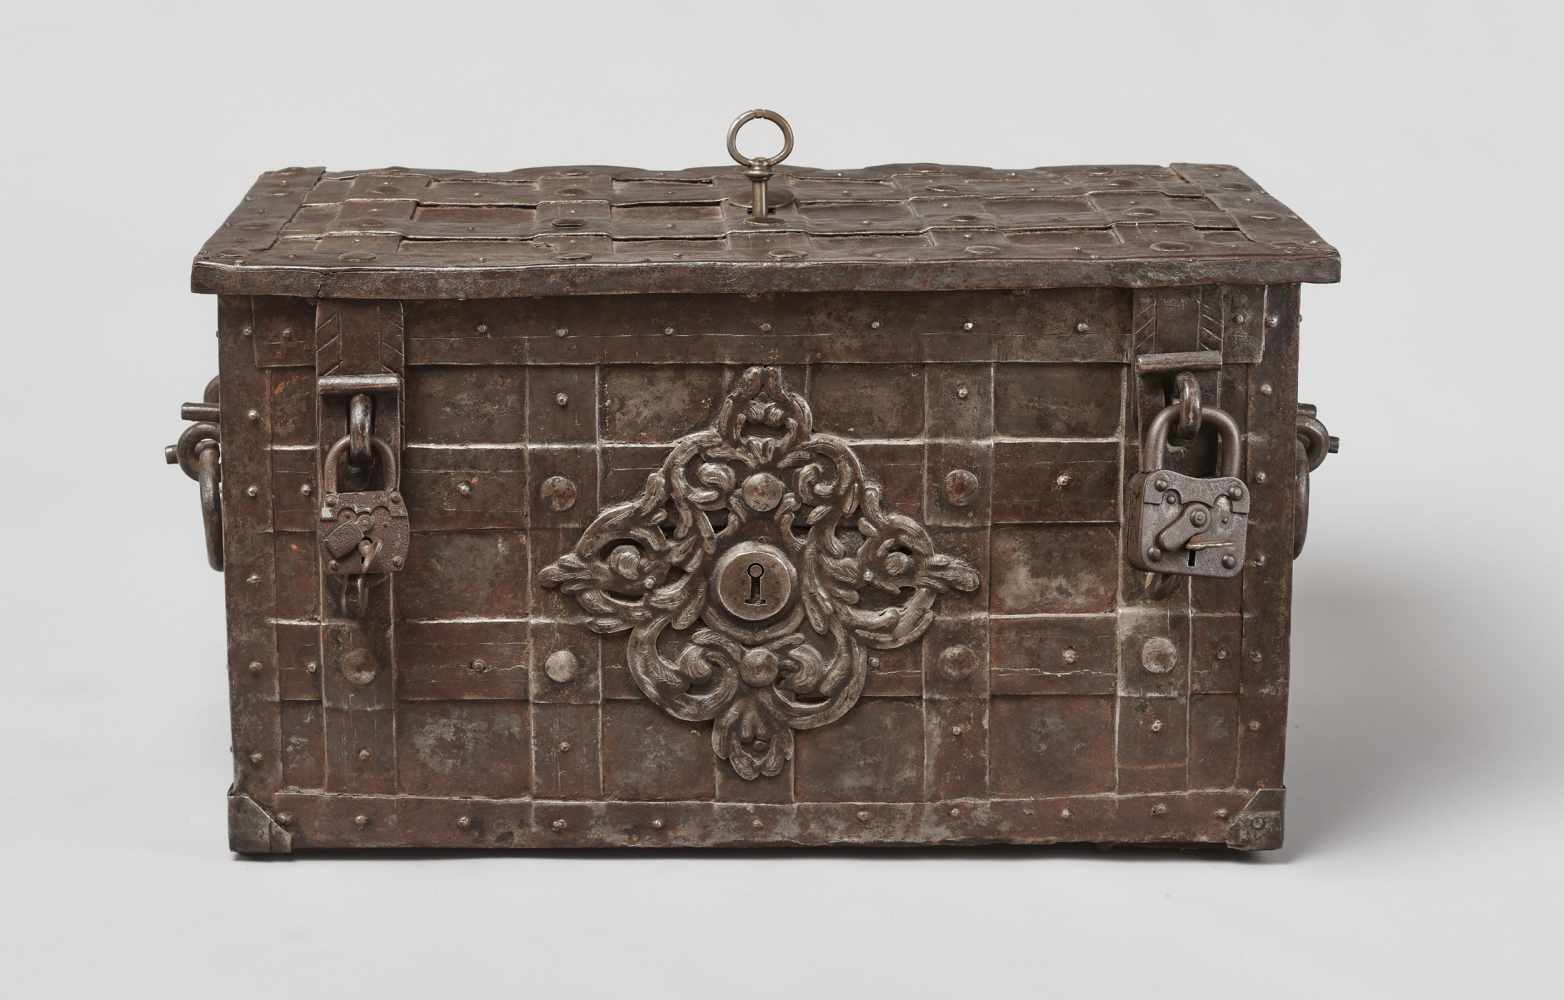 A 17th CENTURY GERMAN WROUGHT IRON 'ARMADA' CHEST WITH MERMAIDSWrought iron, paintGermany17th